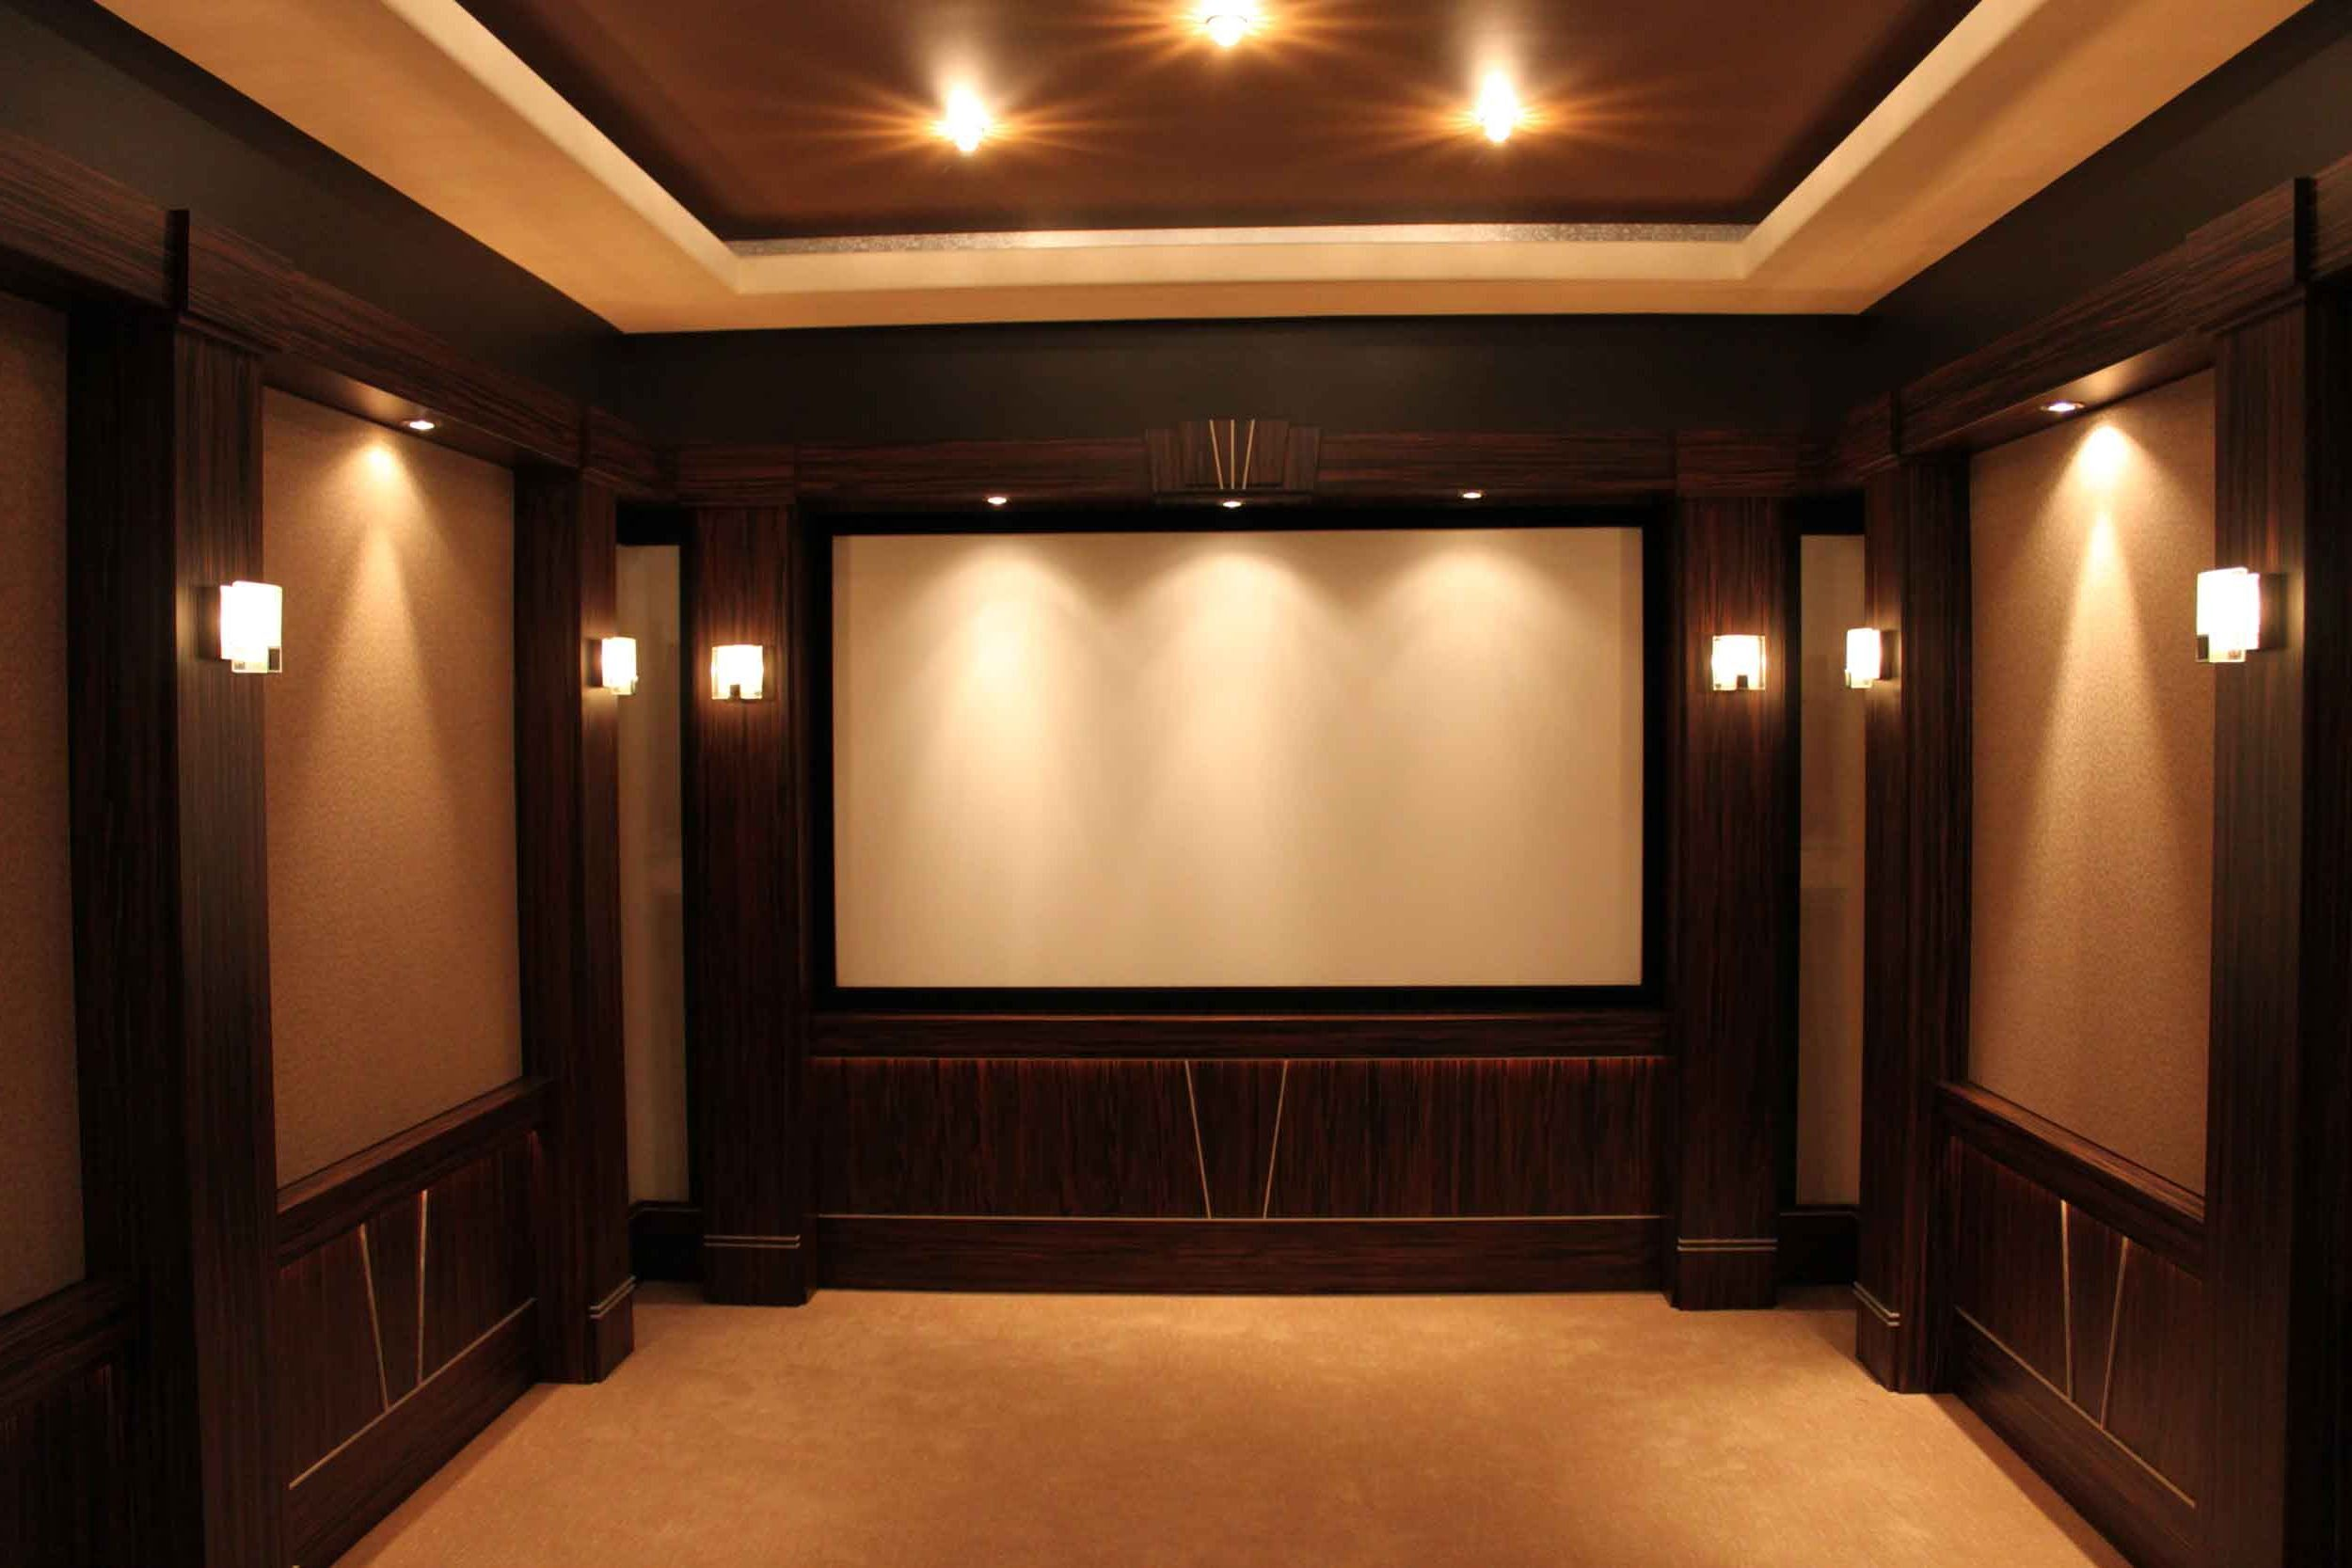 home creations orlando services room new automation smart lighting family theater american electronics drapes electronic